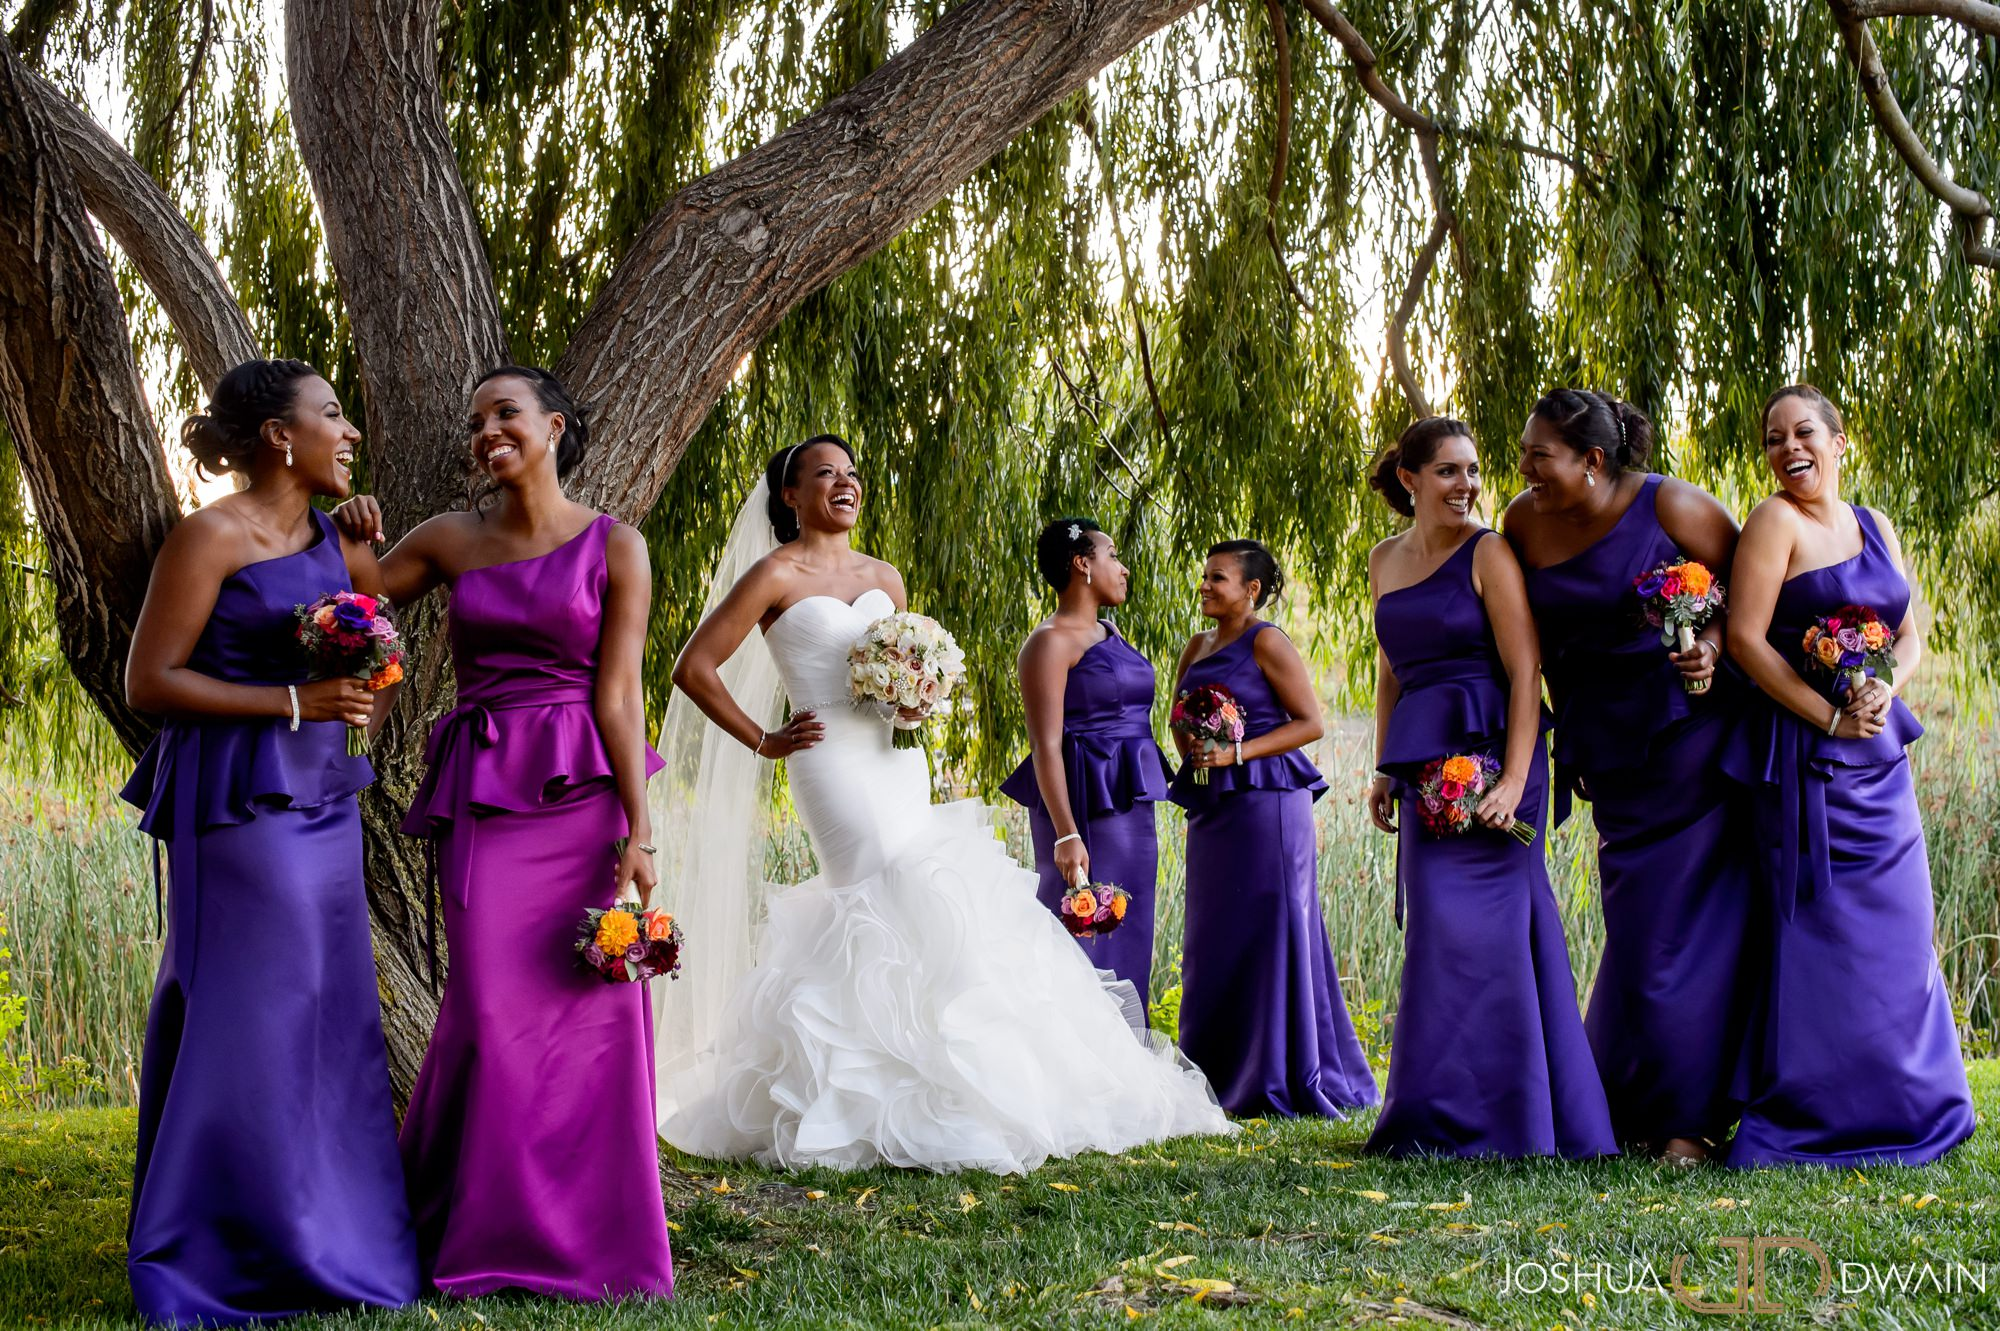 briana-donovan-23-leal-vineyards-winery-wedding-san-francisico-wedding-photographer-joshua-dwain